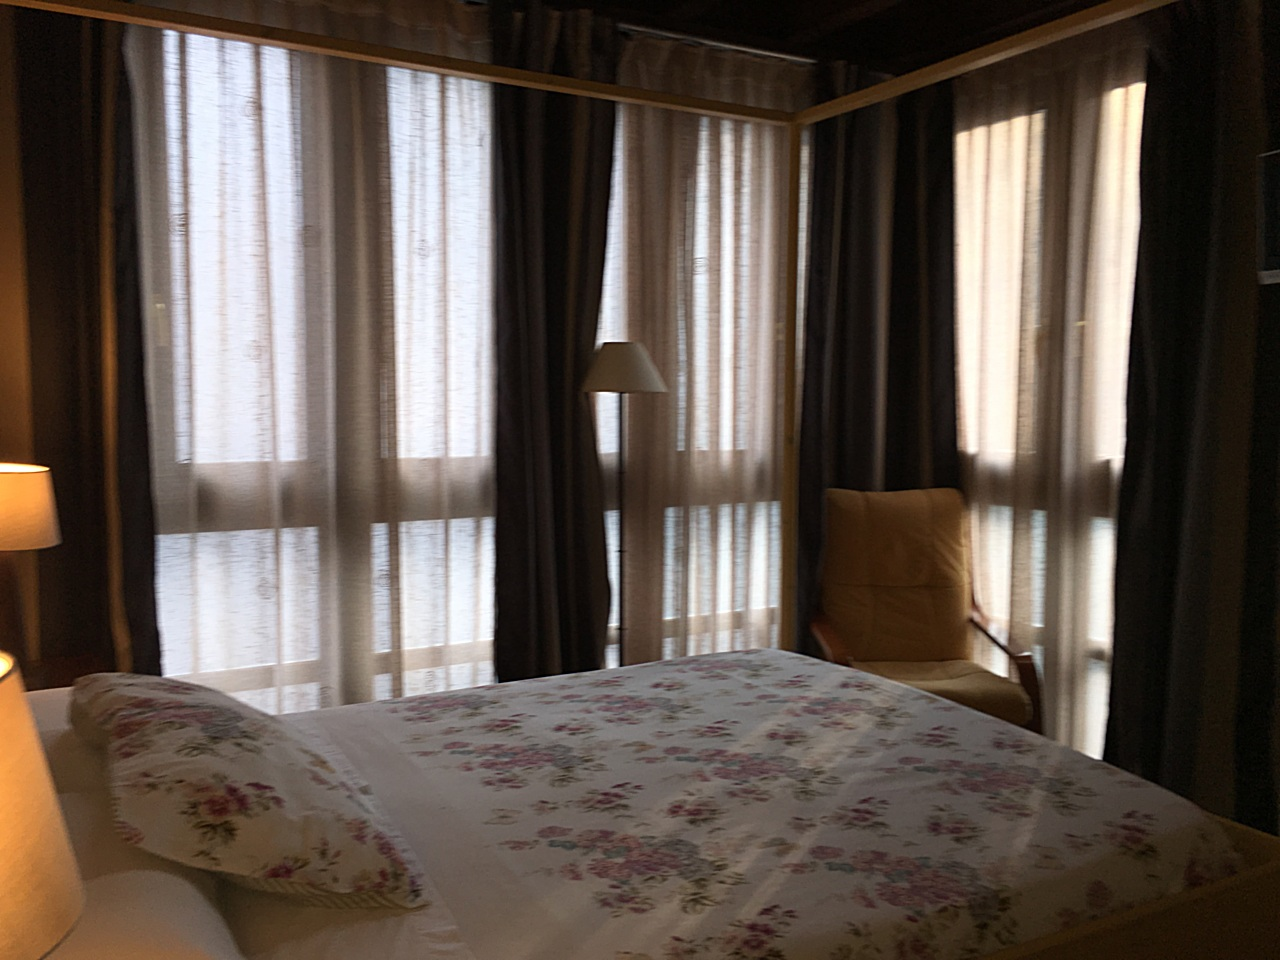 Romantica Double Room - Rooms - Posada 3 Valles